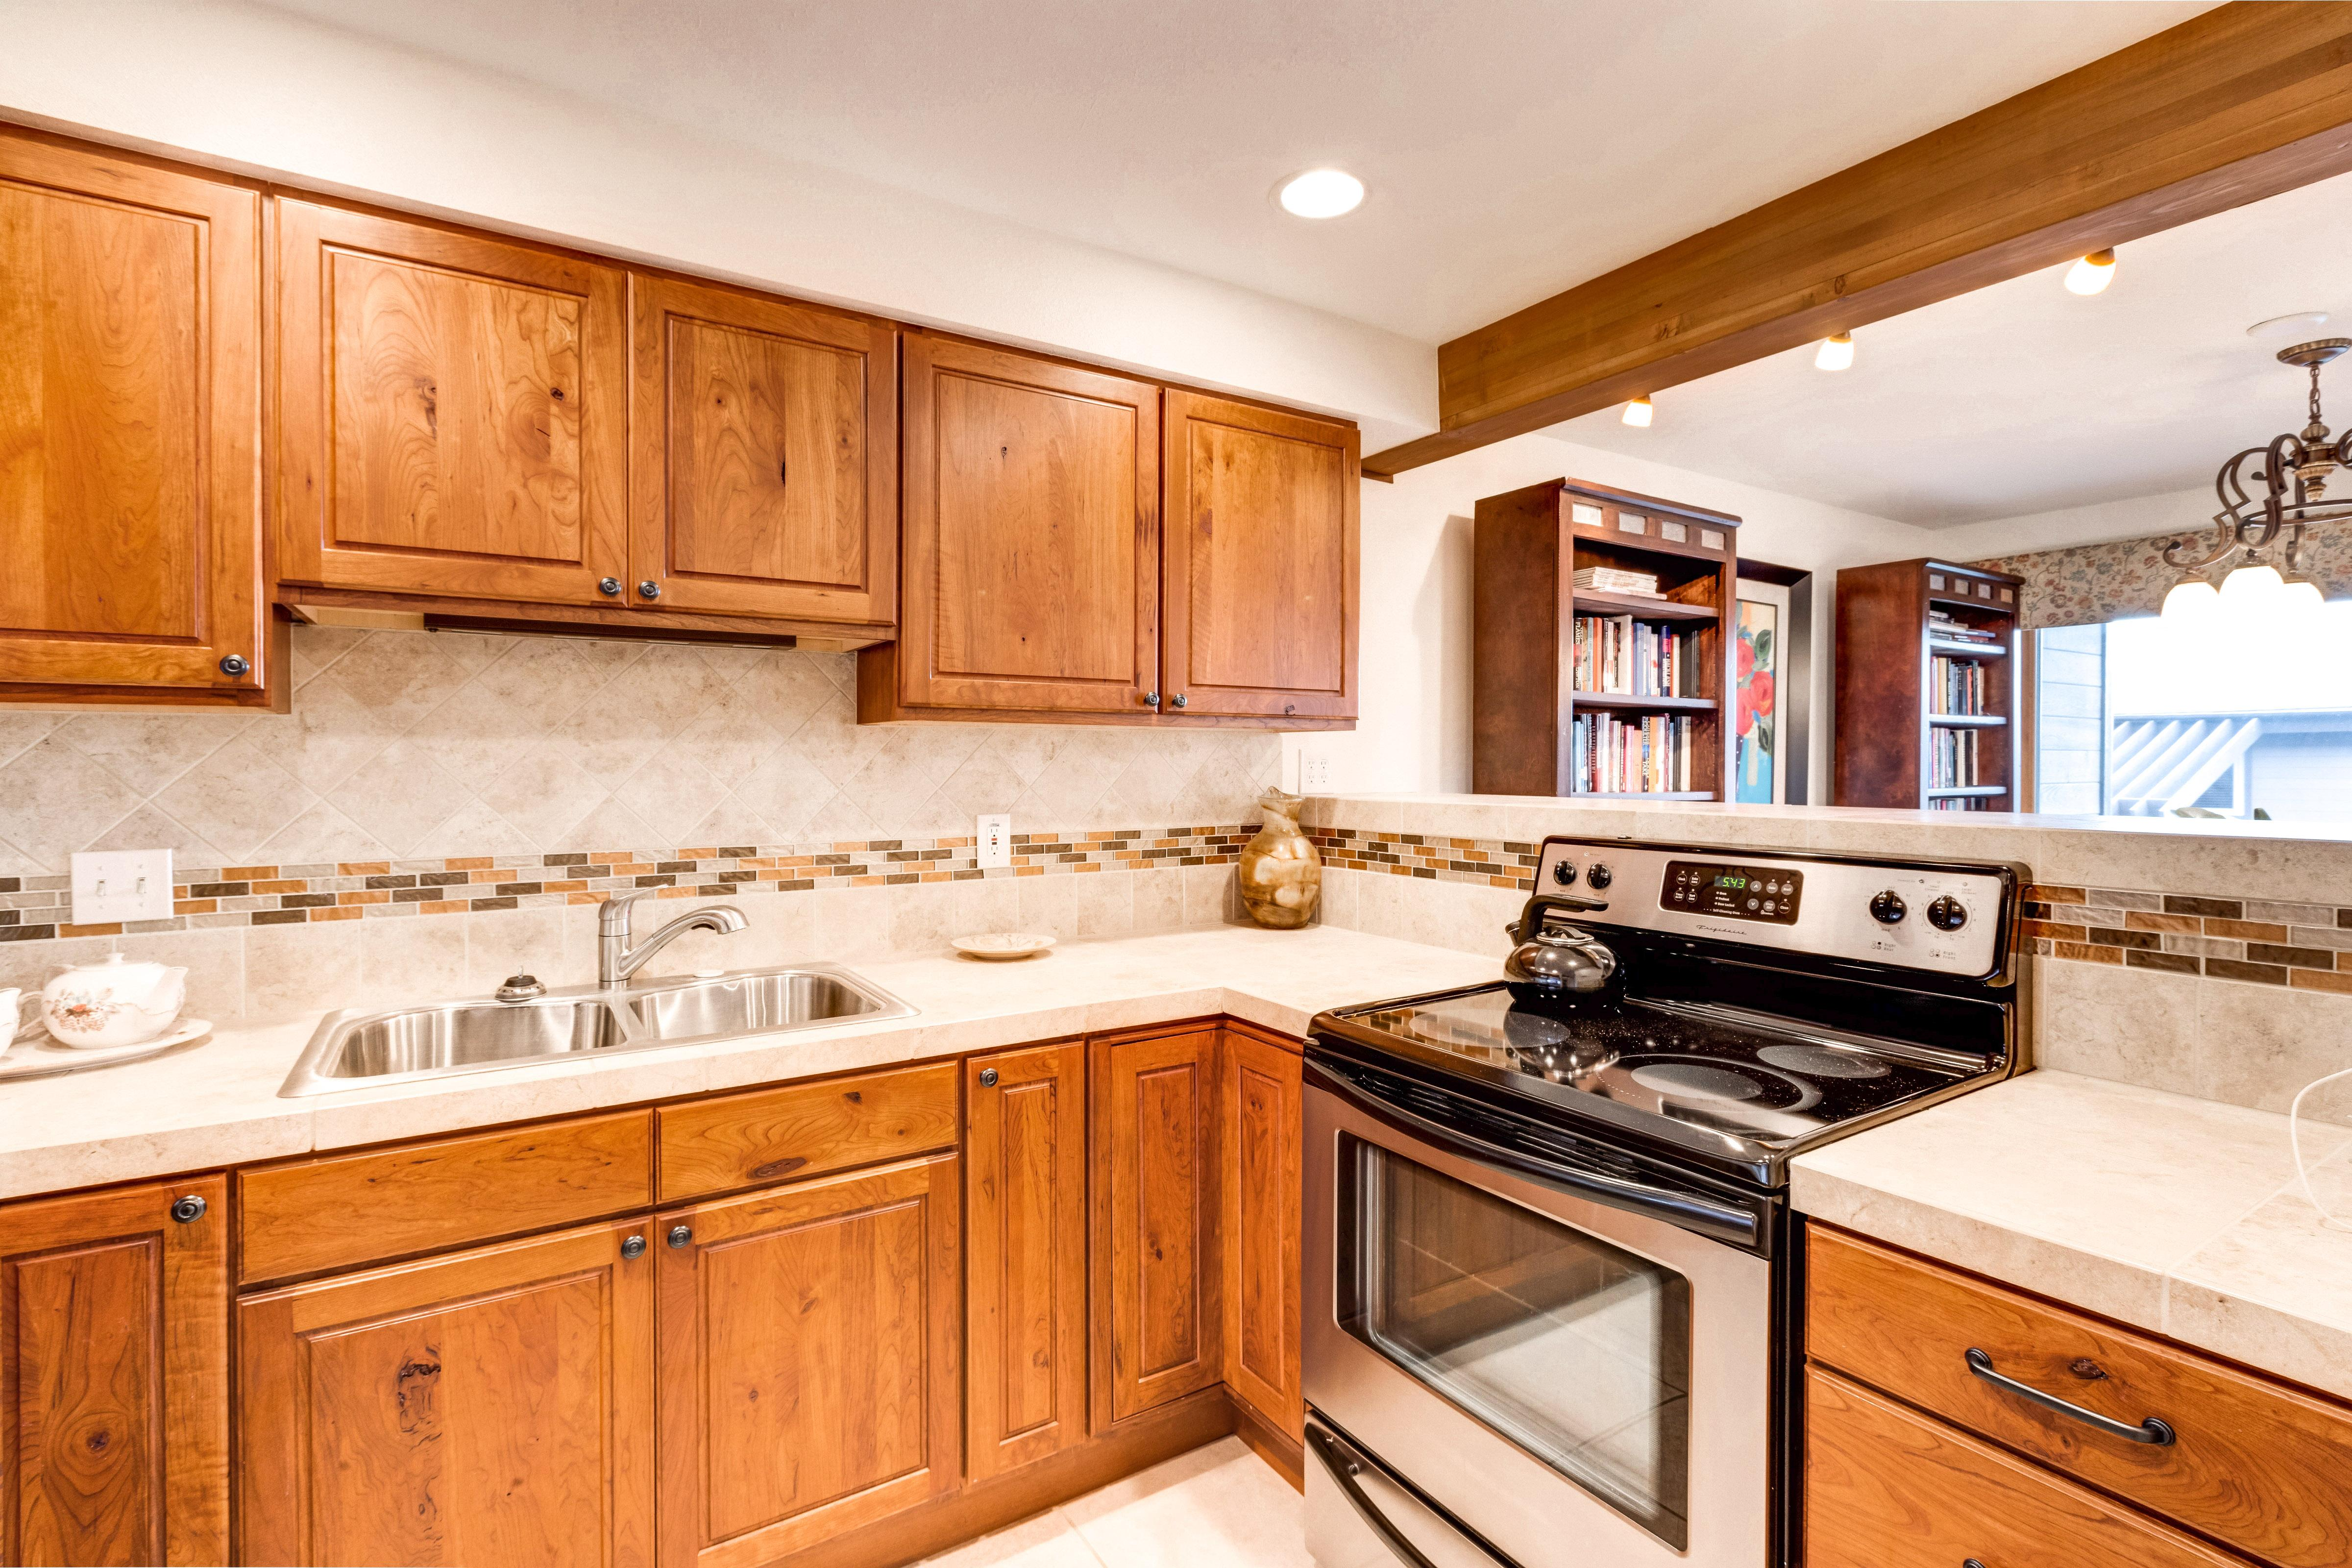 The large, well-equipped kitchen boasts stainless steel appliances and tiled countertops -- everything you'll need to prepare home cooked meals.